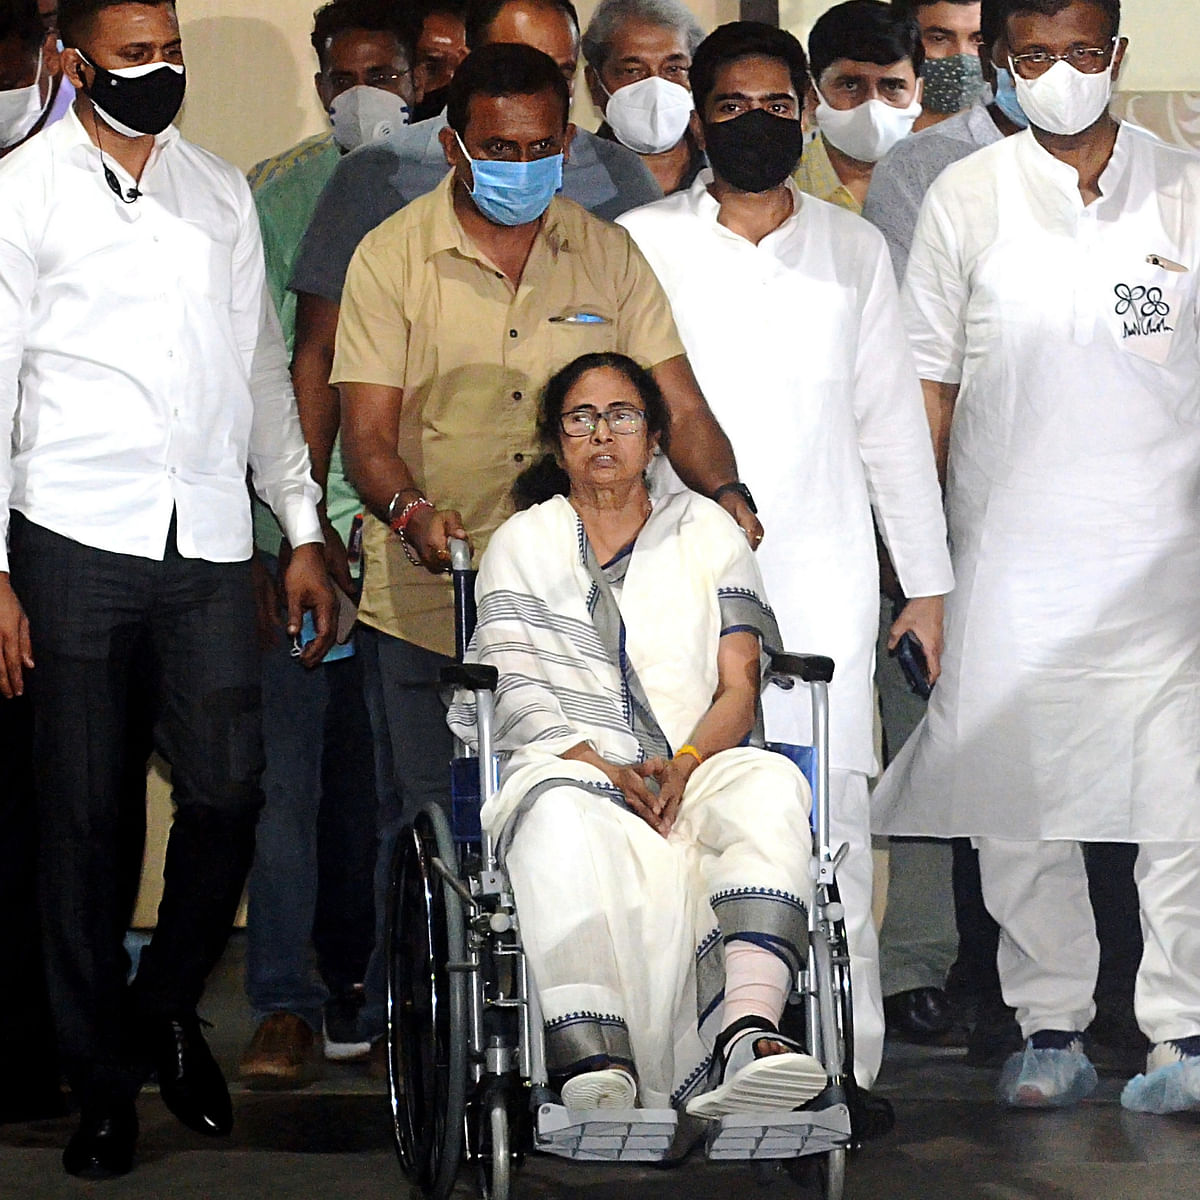 West Bengal Assembly polls: Days after 'attack', Mamata Banerjee to conduct roadshow on wheelchair in Kolkata today